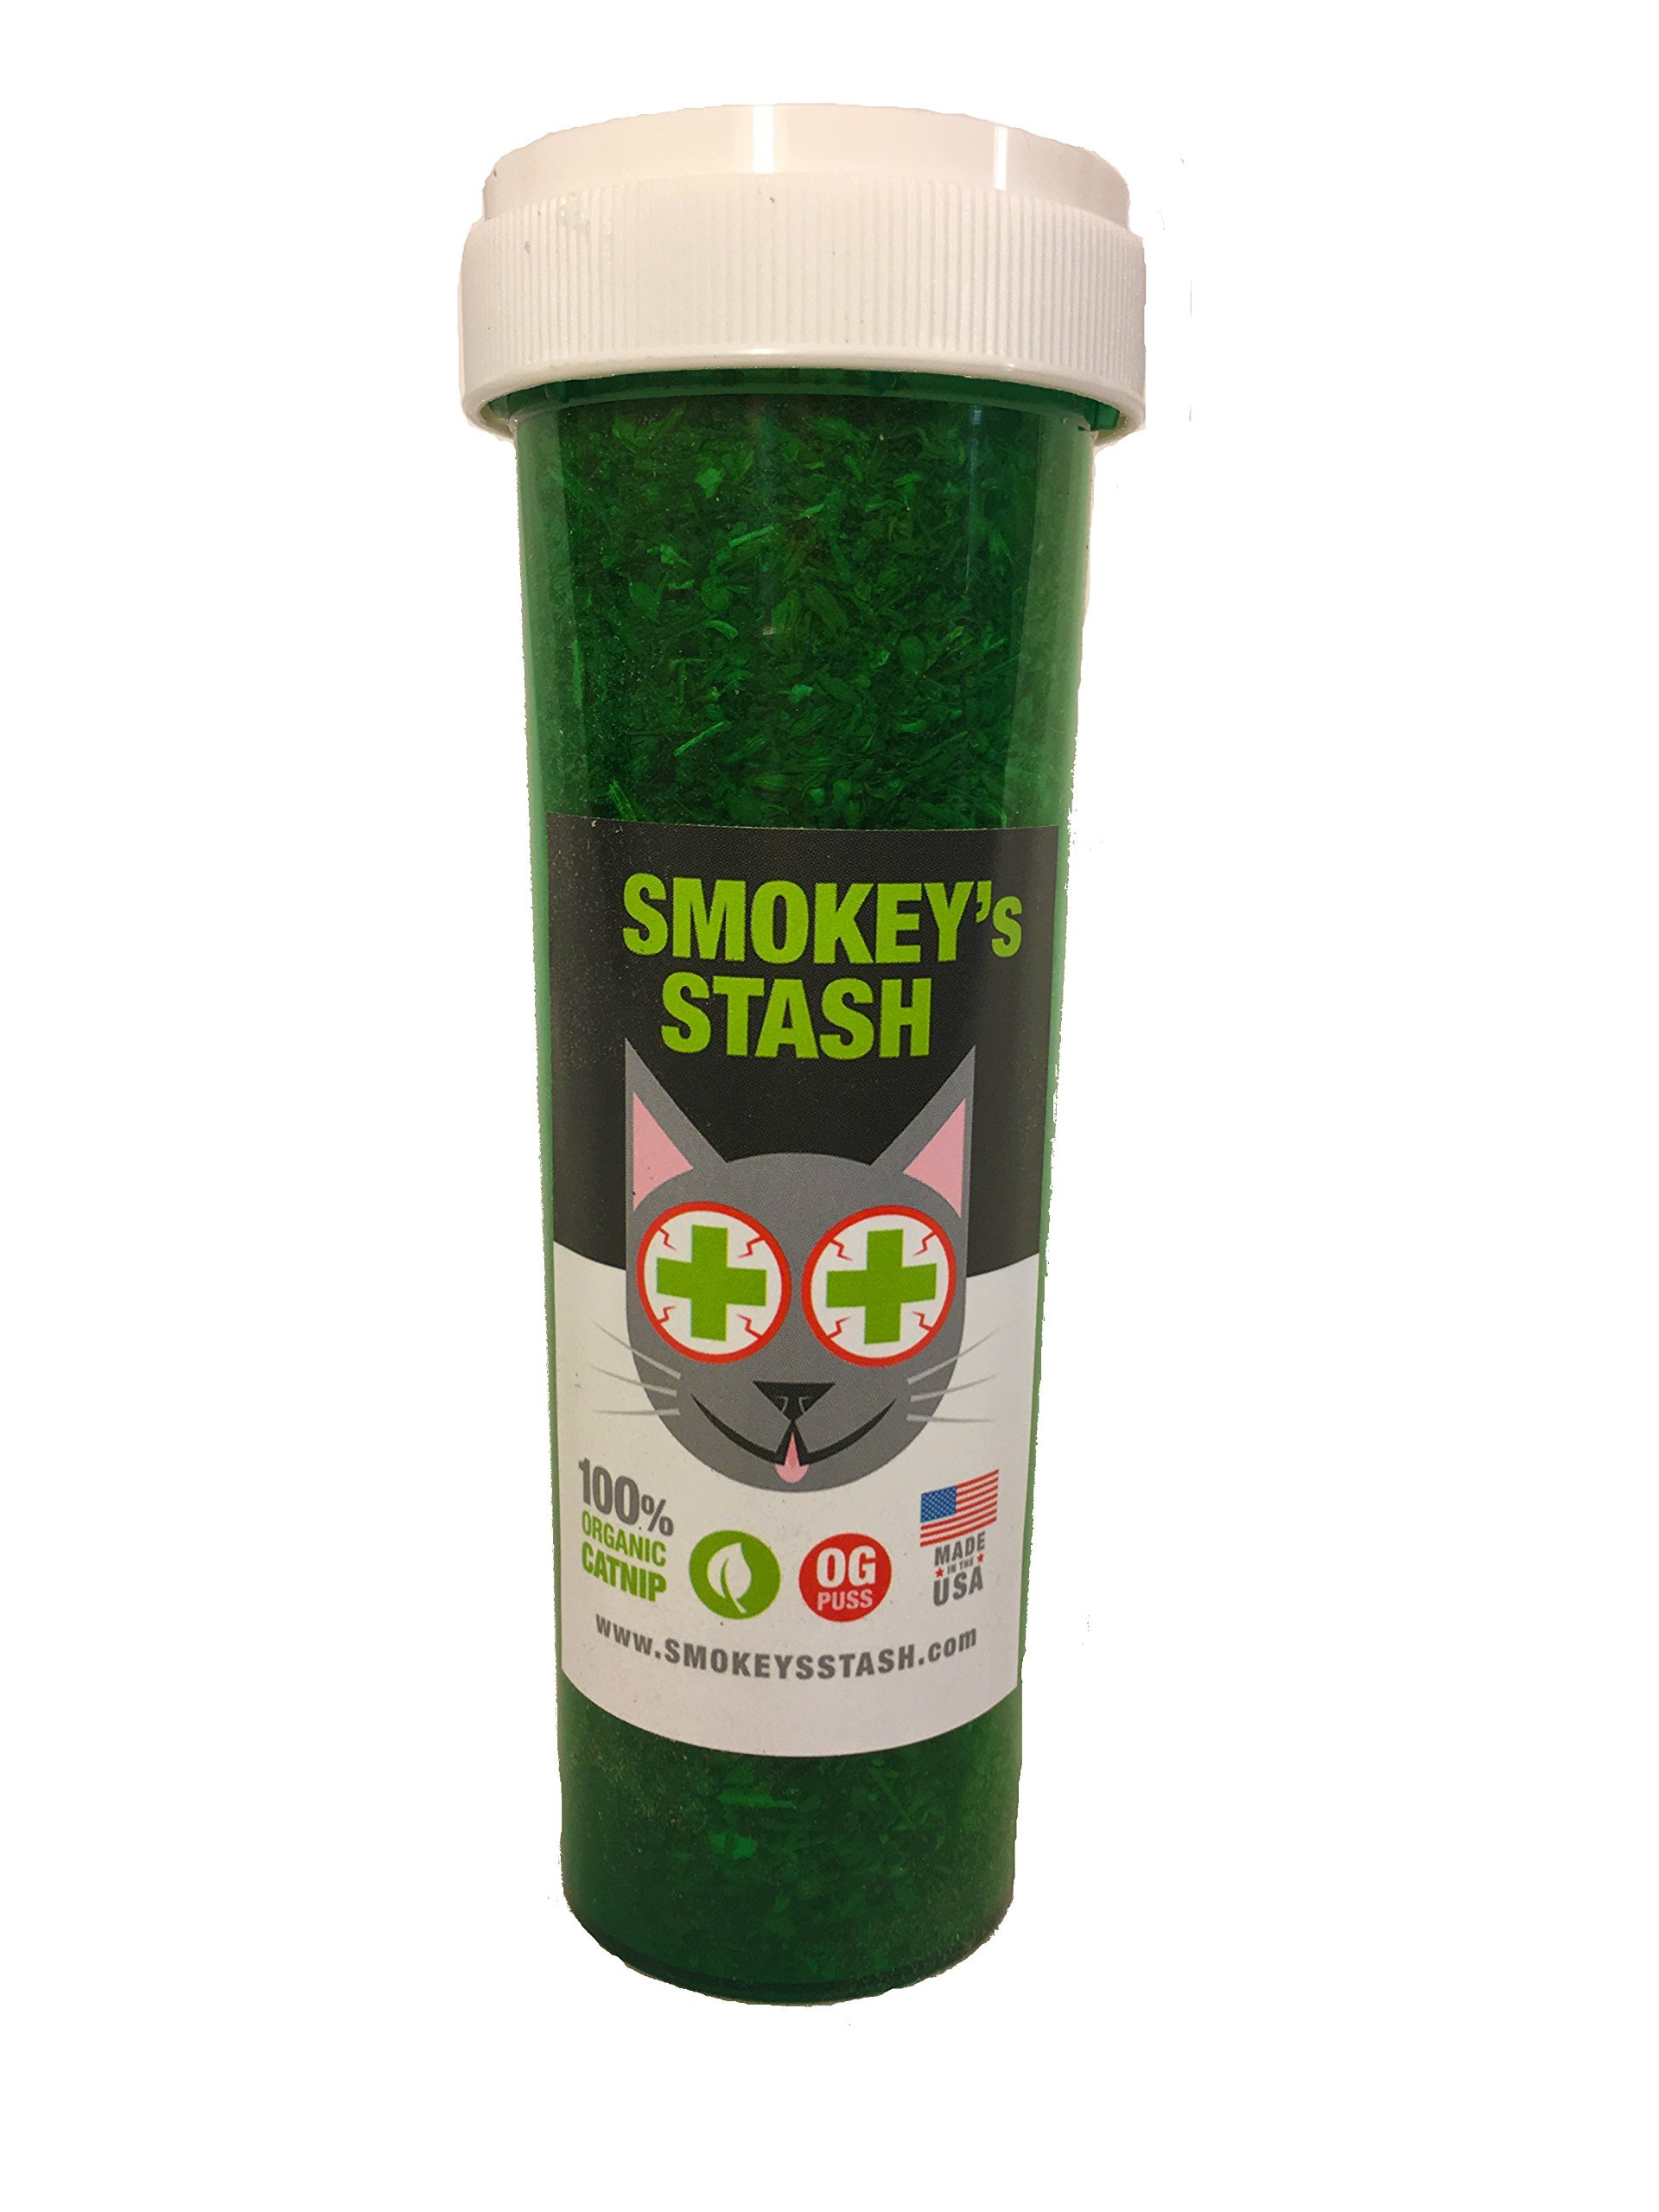 Organic catnip by Smokey's Stash | OG puss | cat weed for cats pop top - large